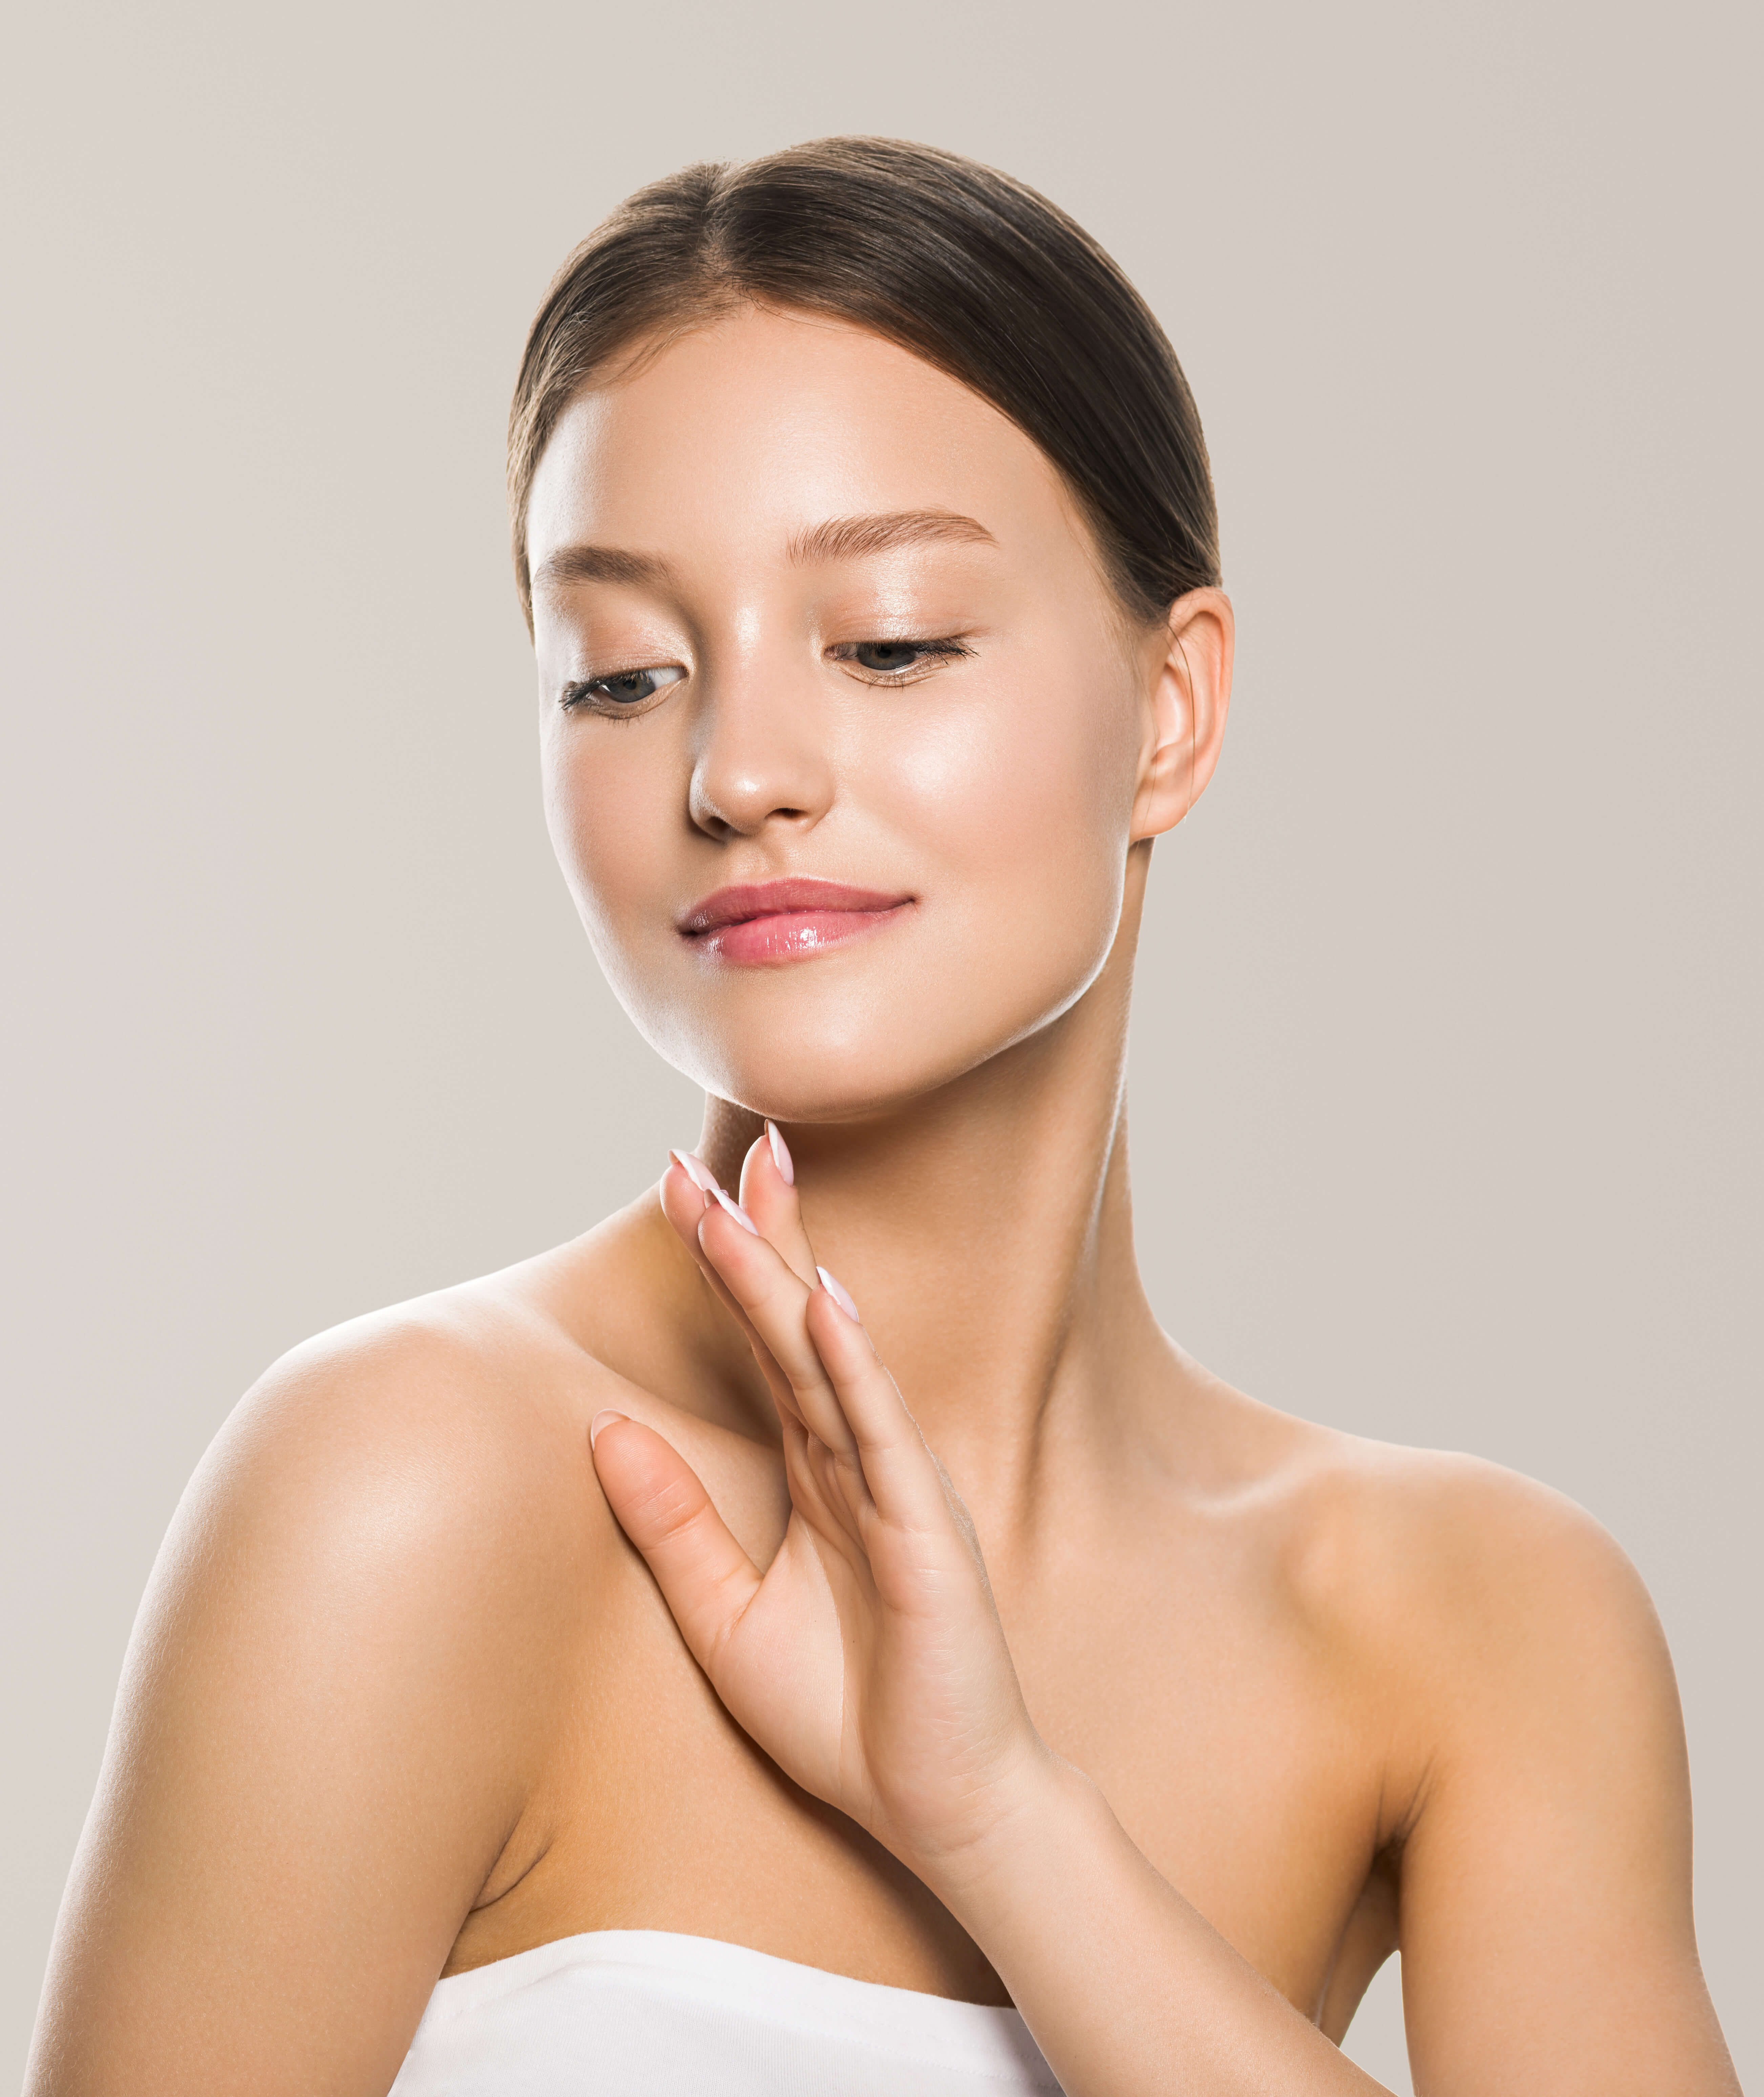 image of a model, with clear skin after hydrafacial